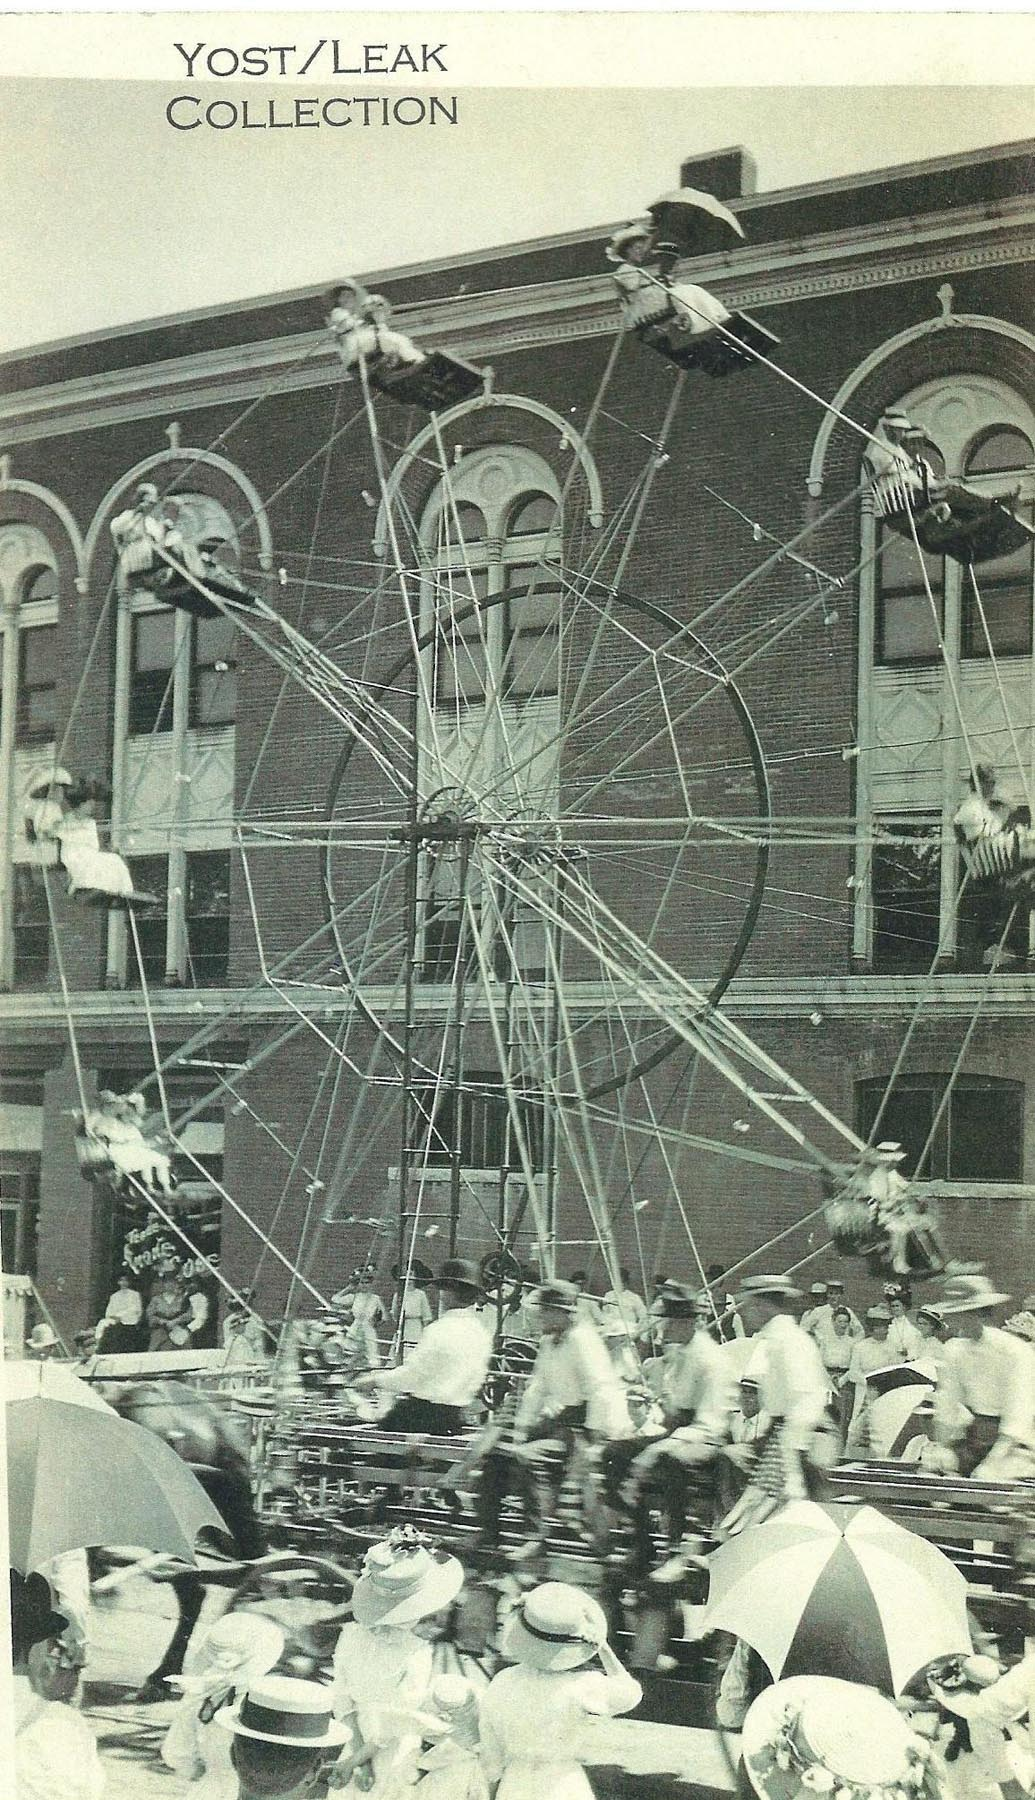 Potter Bldg. - Celebration,m Ferris Wheel 2